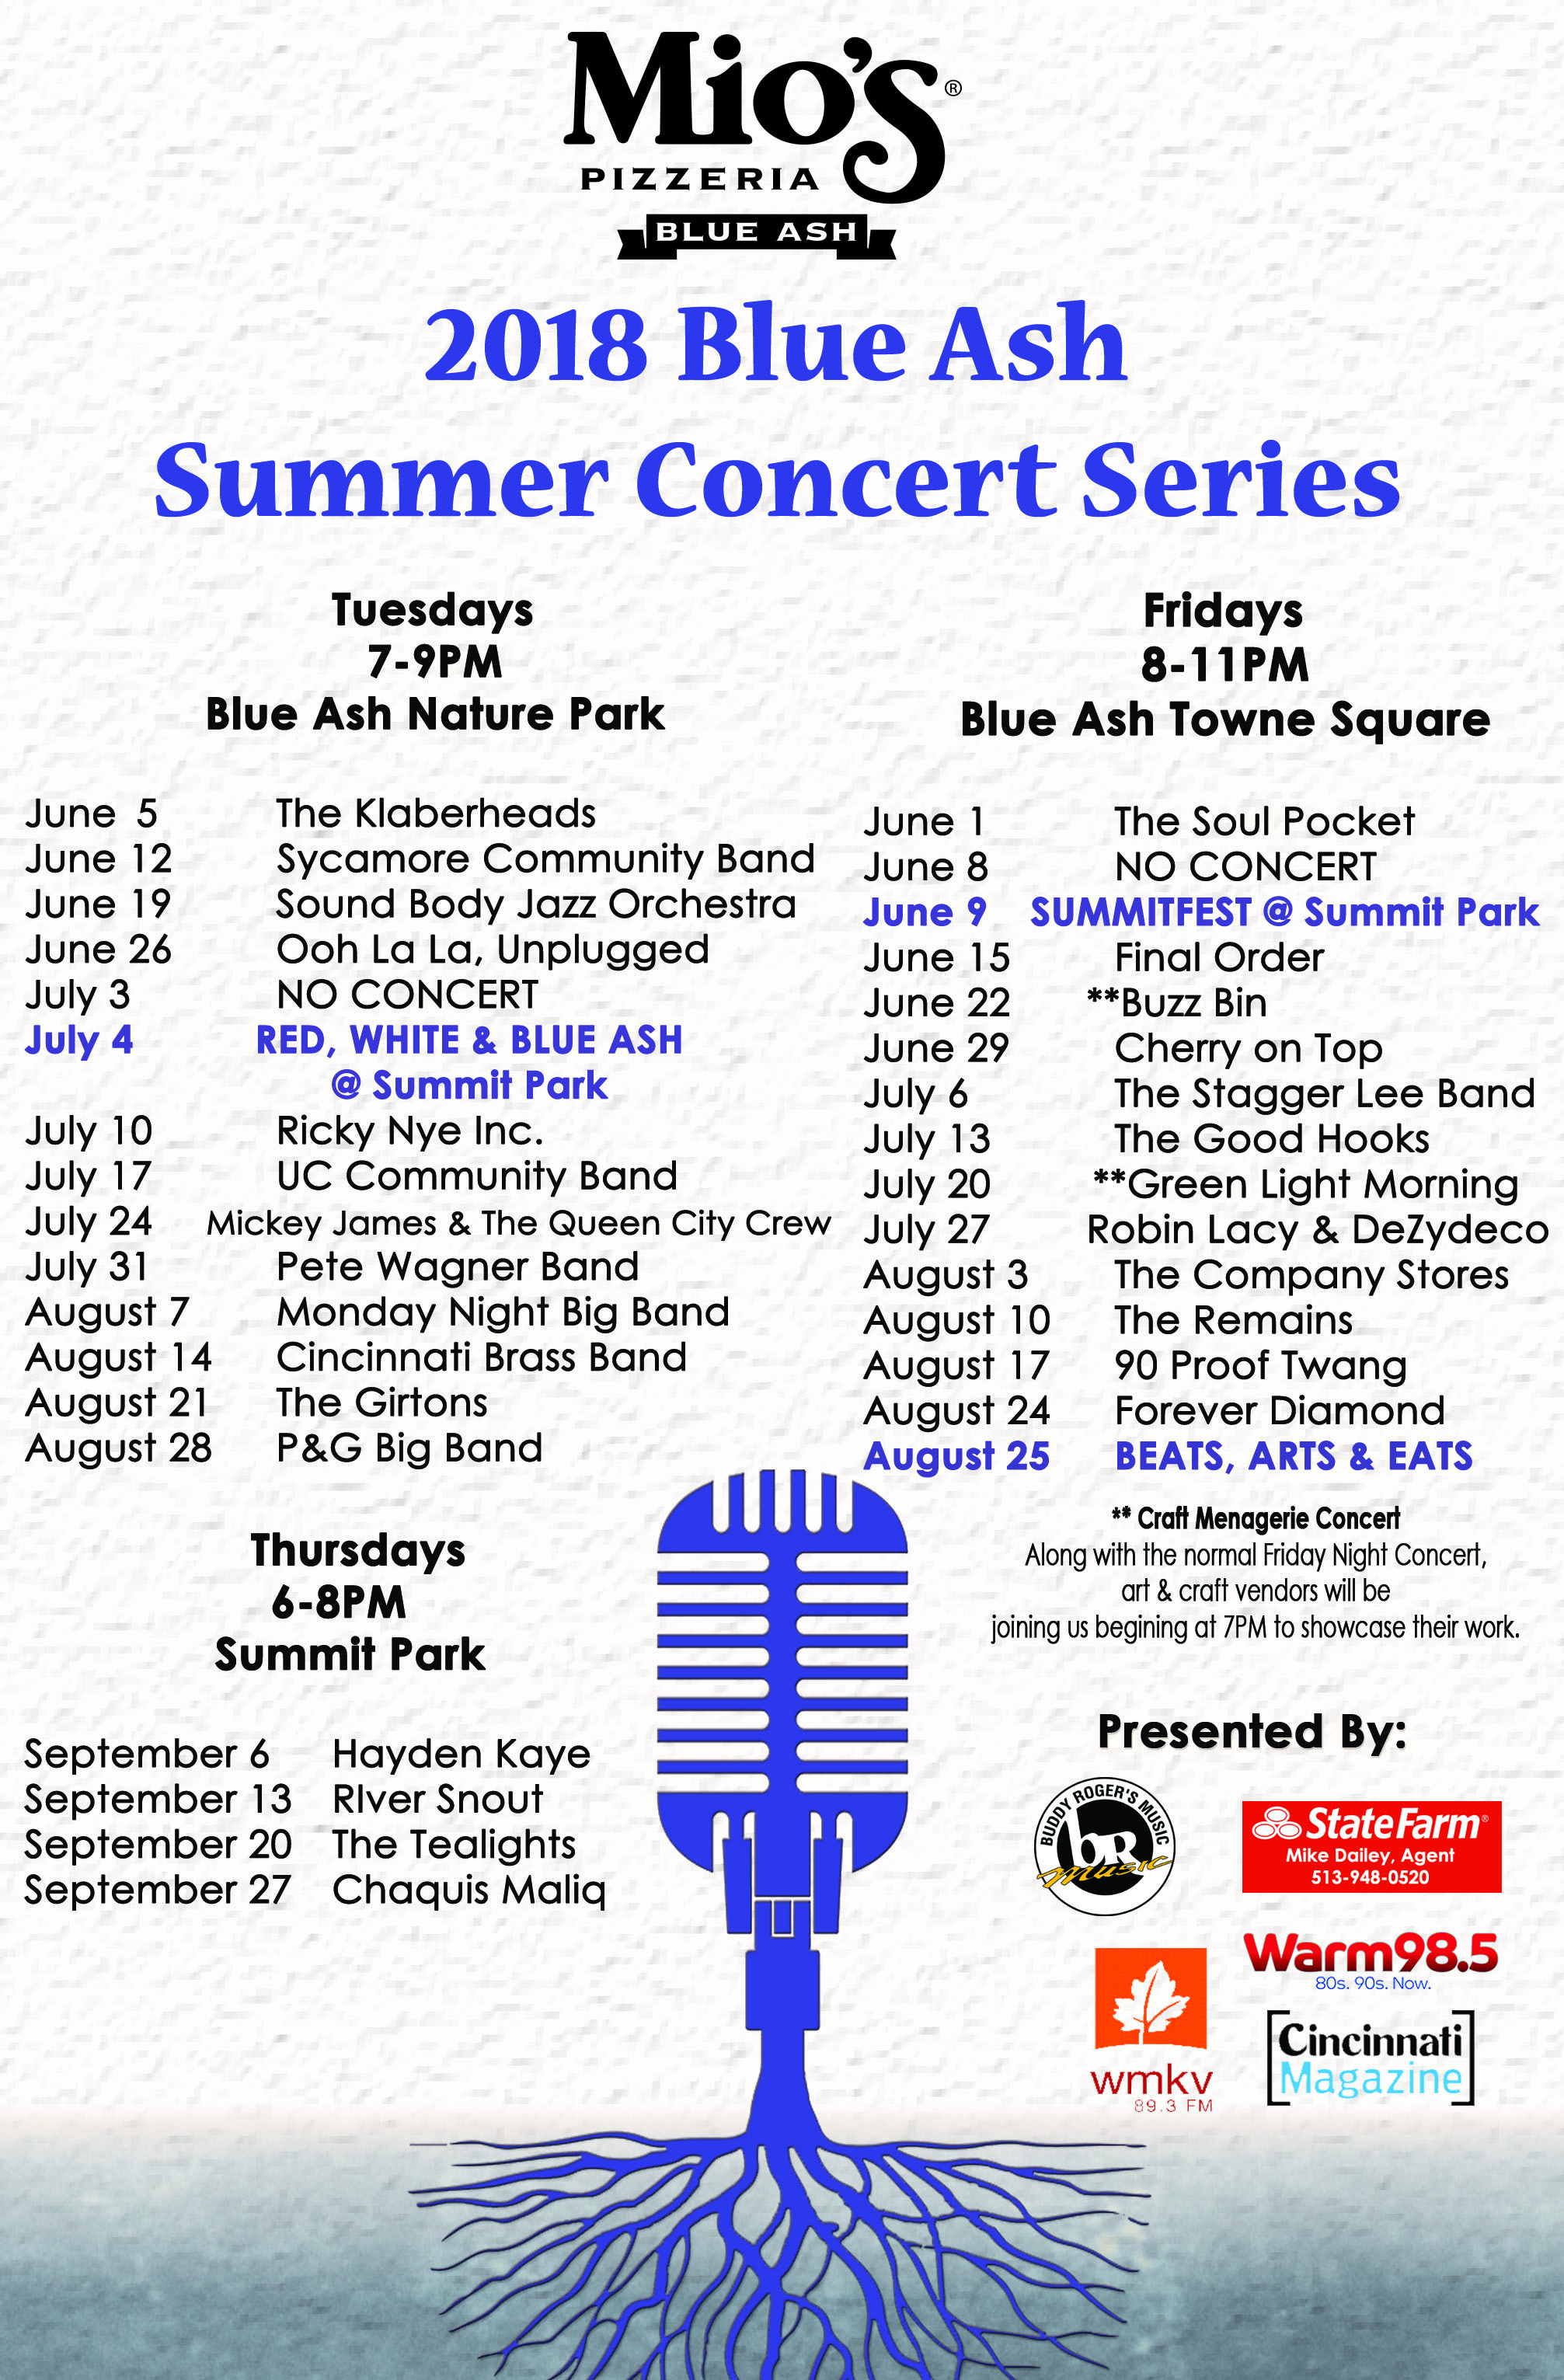 Concert Series Poster 2018